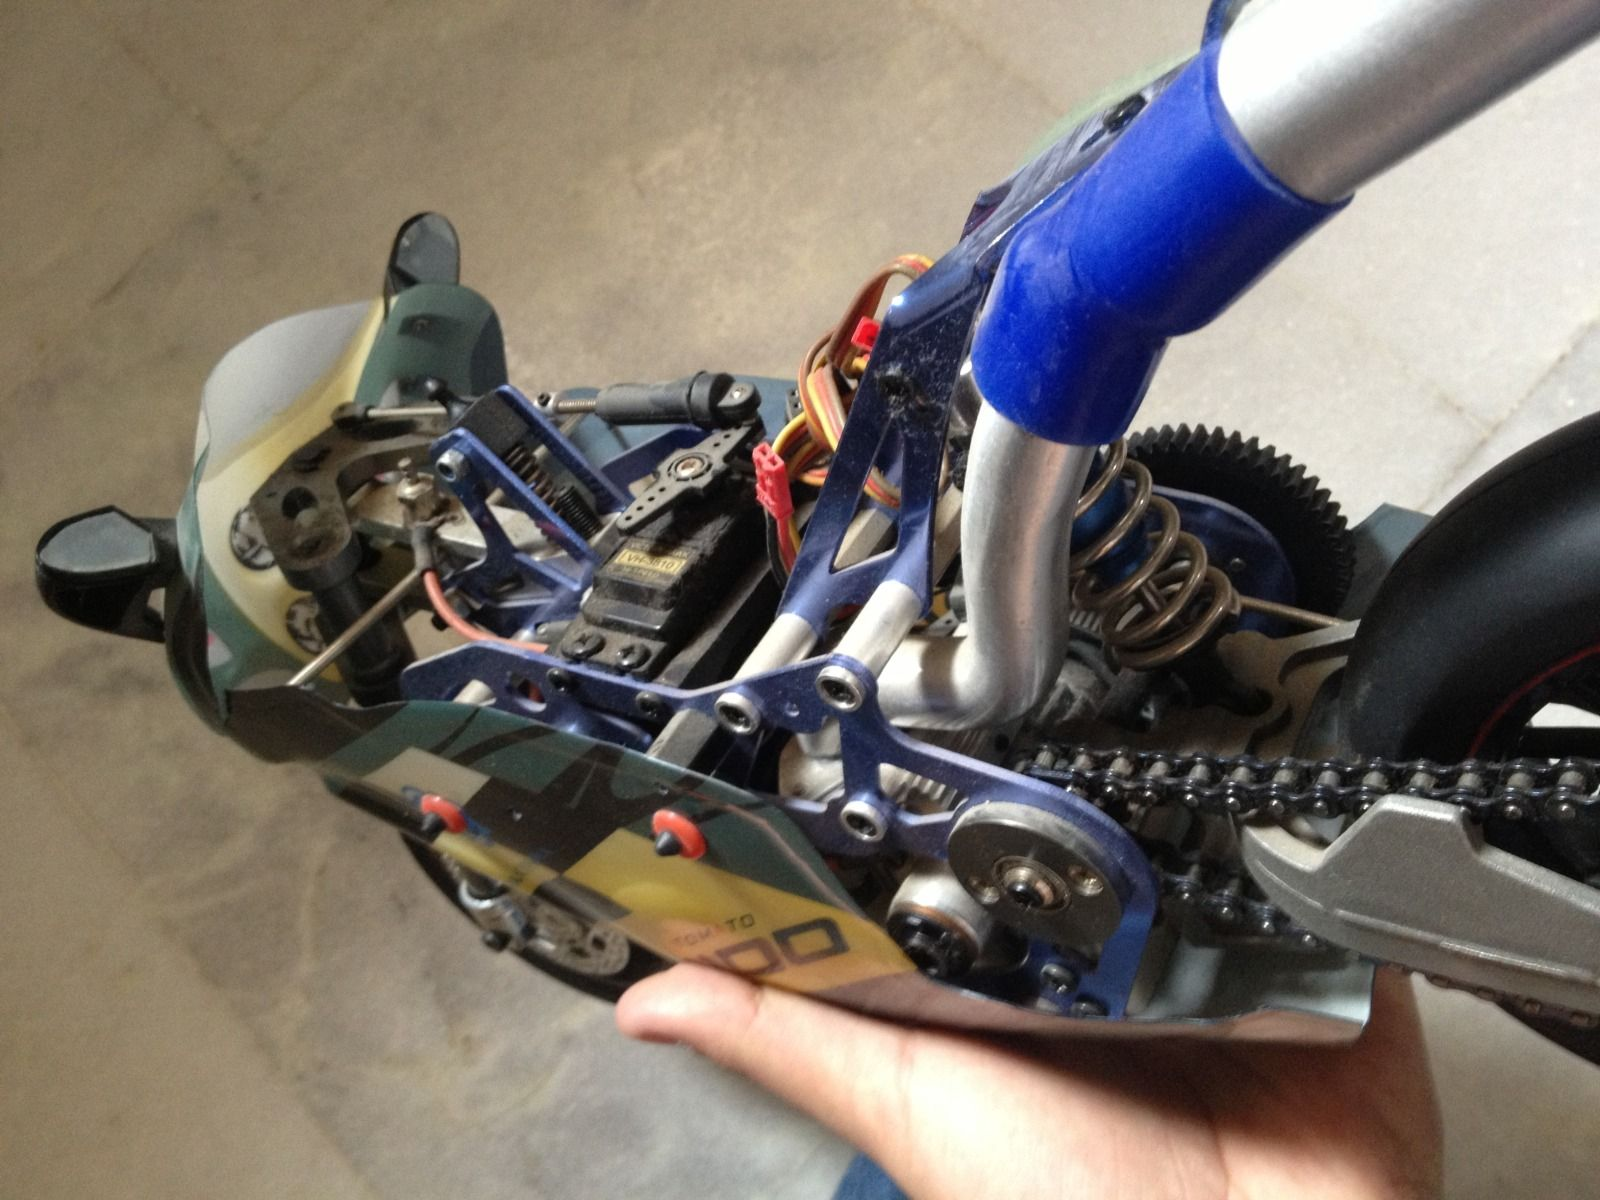 For Sale 1 5 Scale Nitro Rc Motor Bike Ready To Go India S